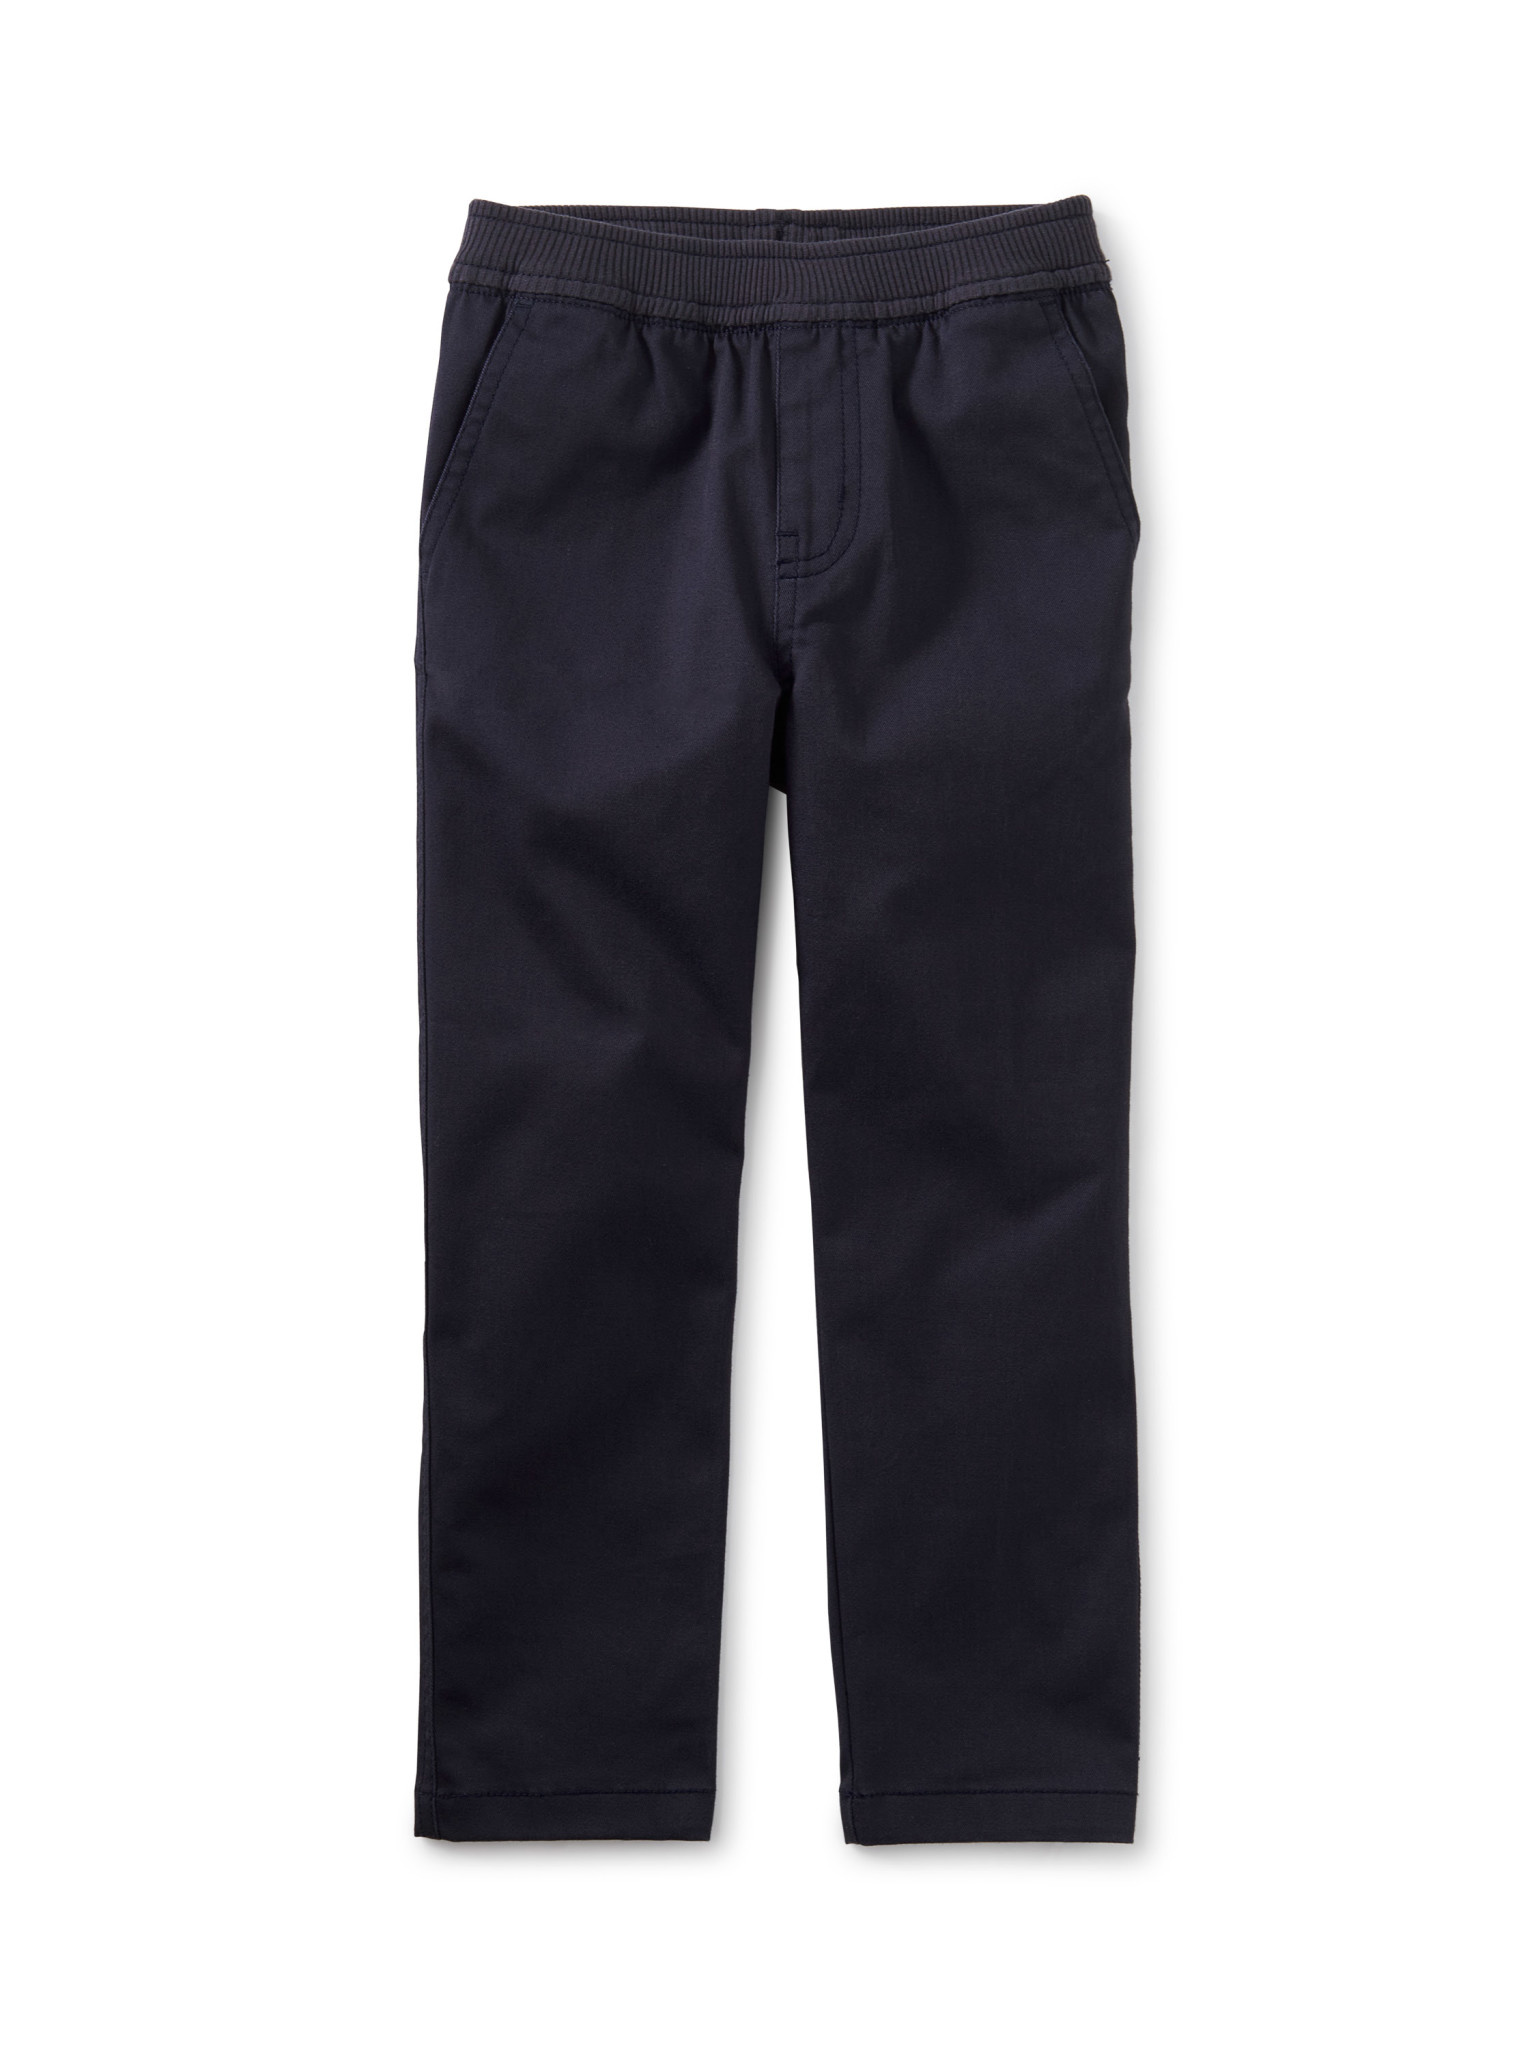 Tea Collection Stretch Twill Pant